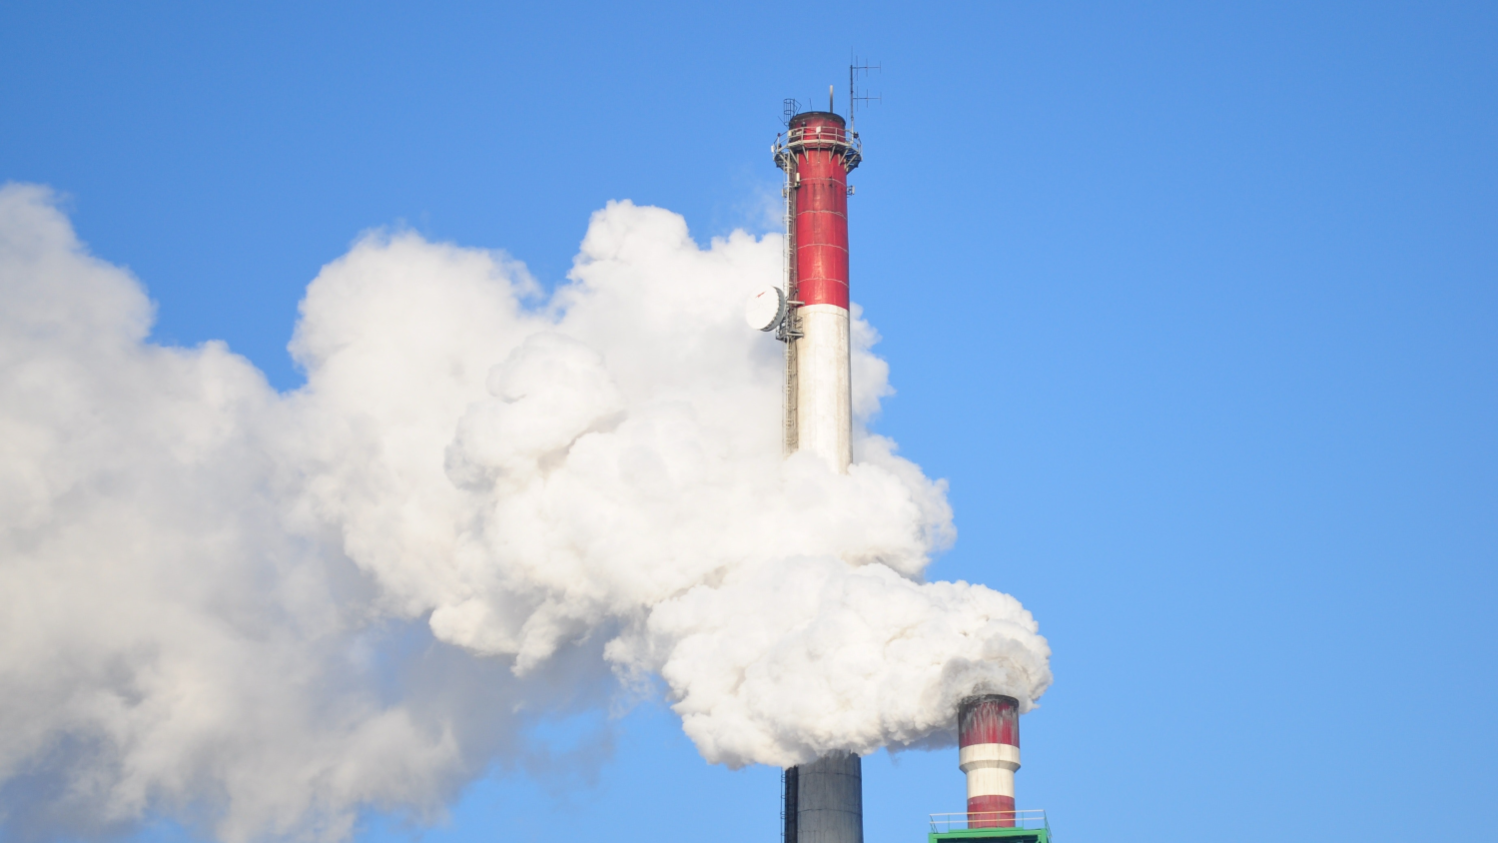 Energy-efficient CO2 capture and release using magnetic materials